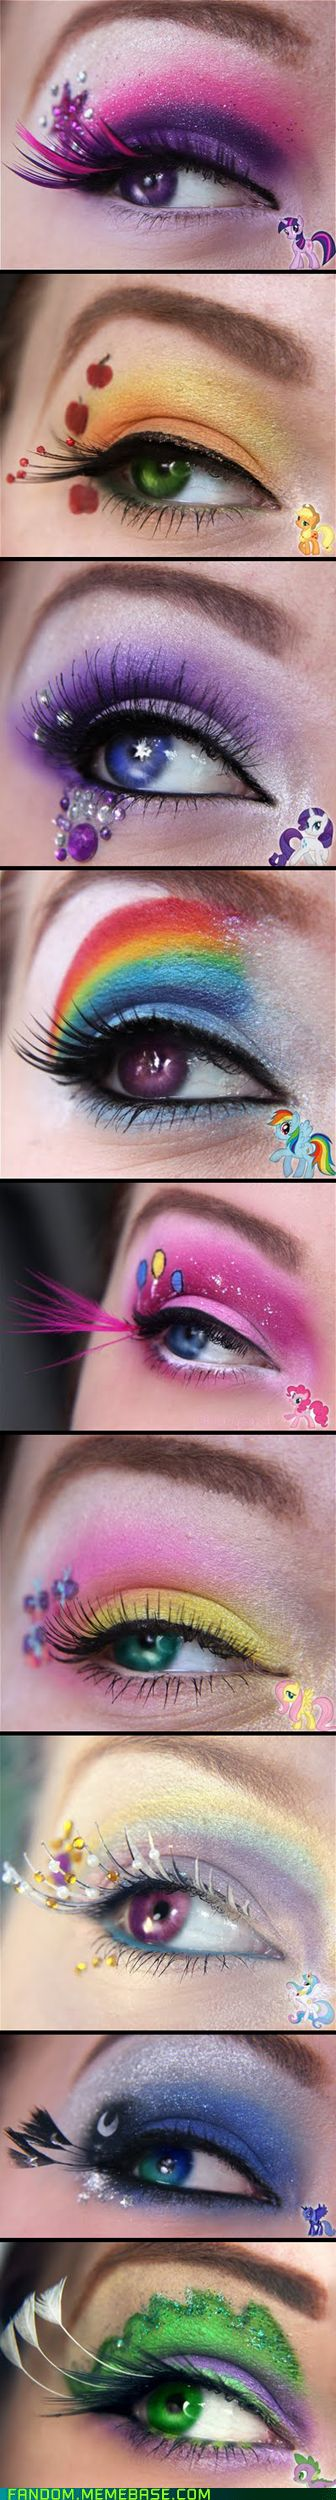 Make-up looks inspired by My Little Pony: Friendship is Magic. I love Luna's look.